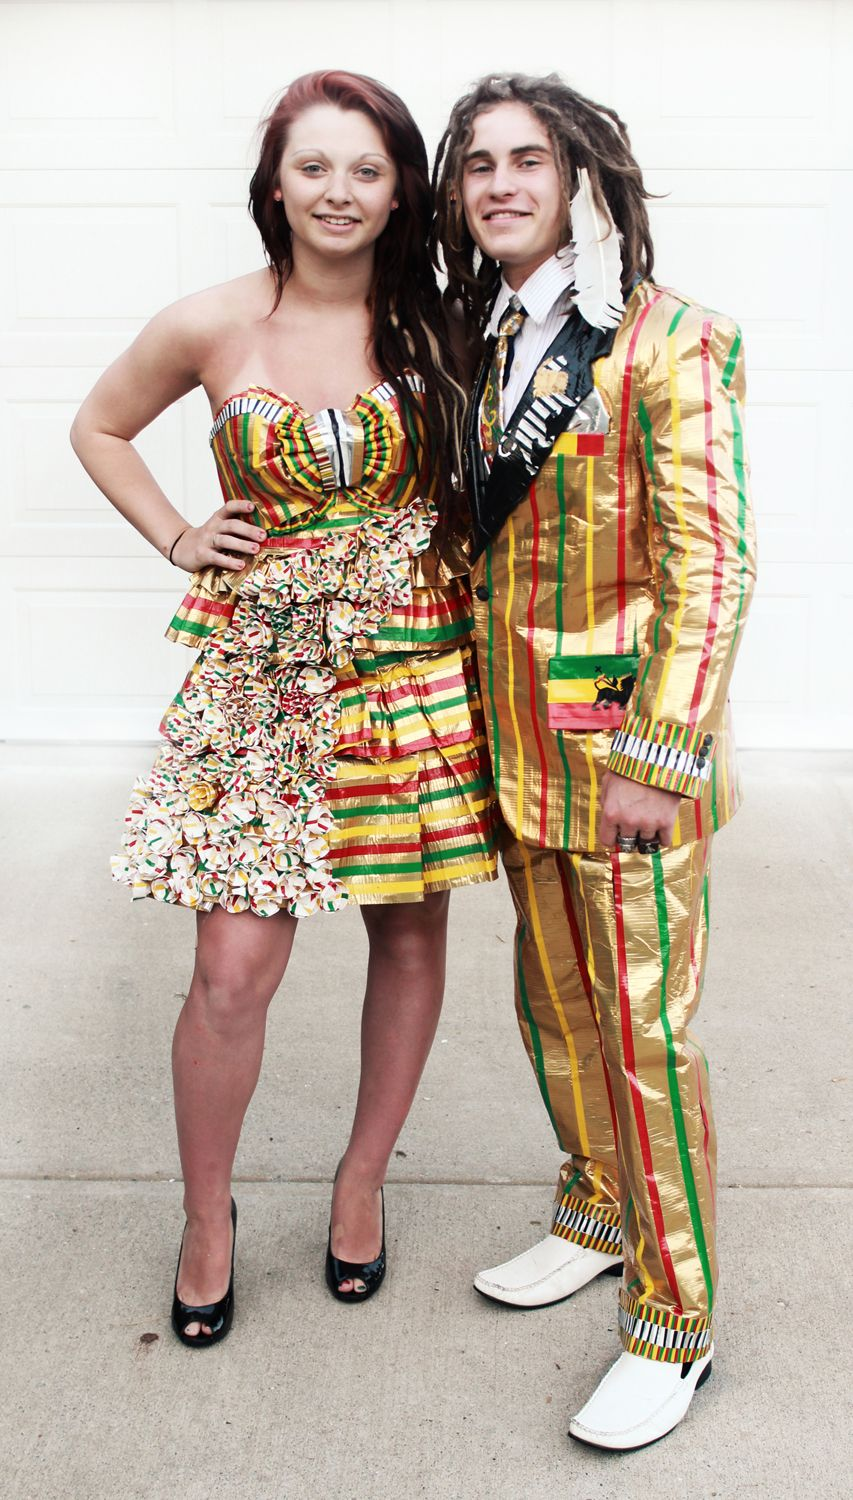 2012 Stuck at Prom finalist Cole and Gabrielle - duct tape prom ...